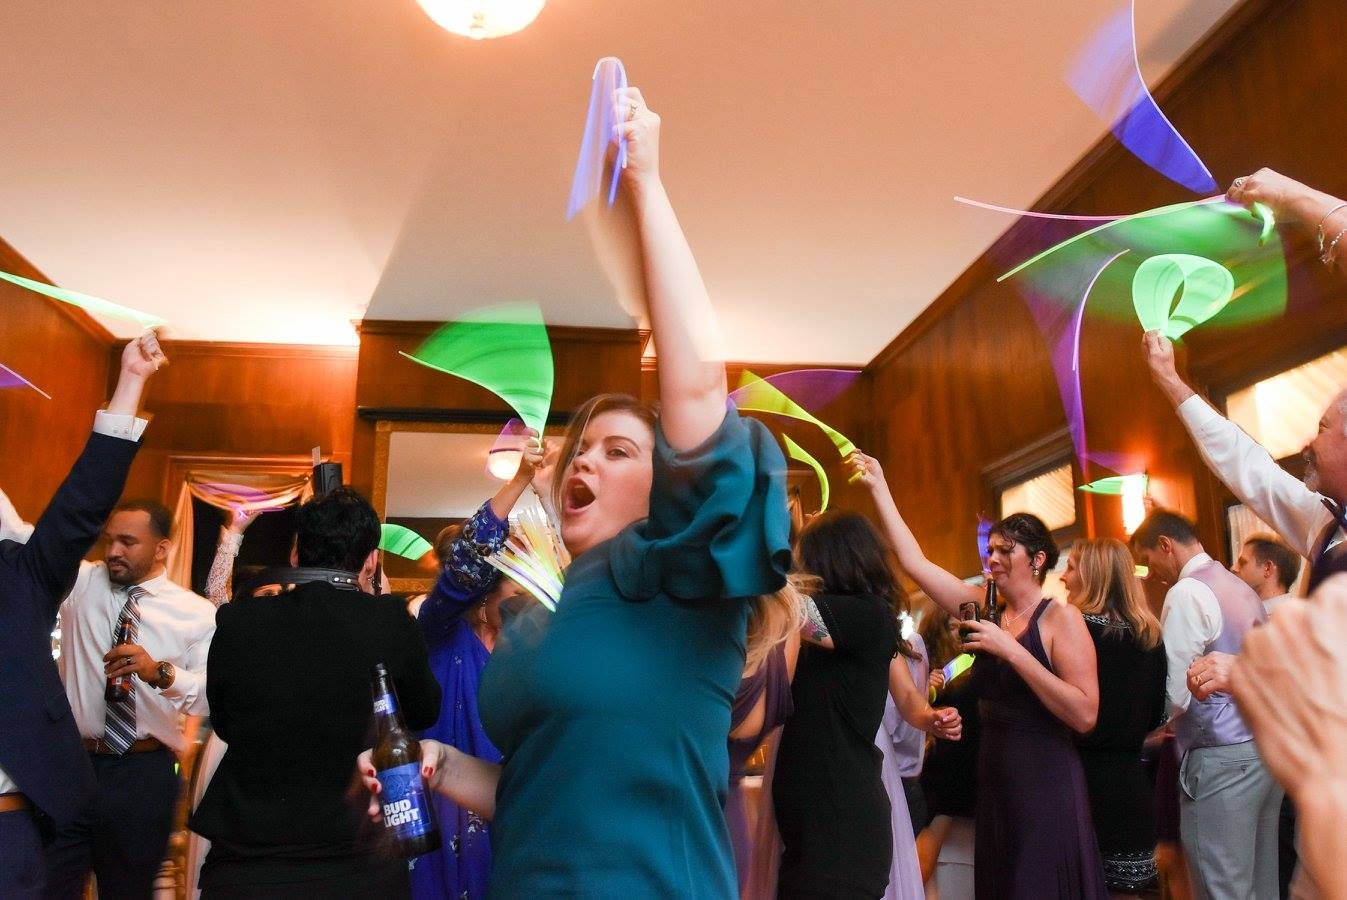 woman in turquoise dress dances with glow stick